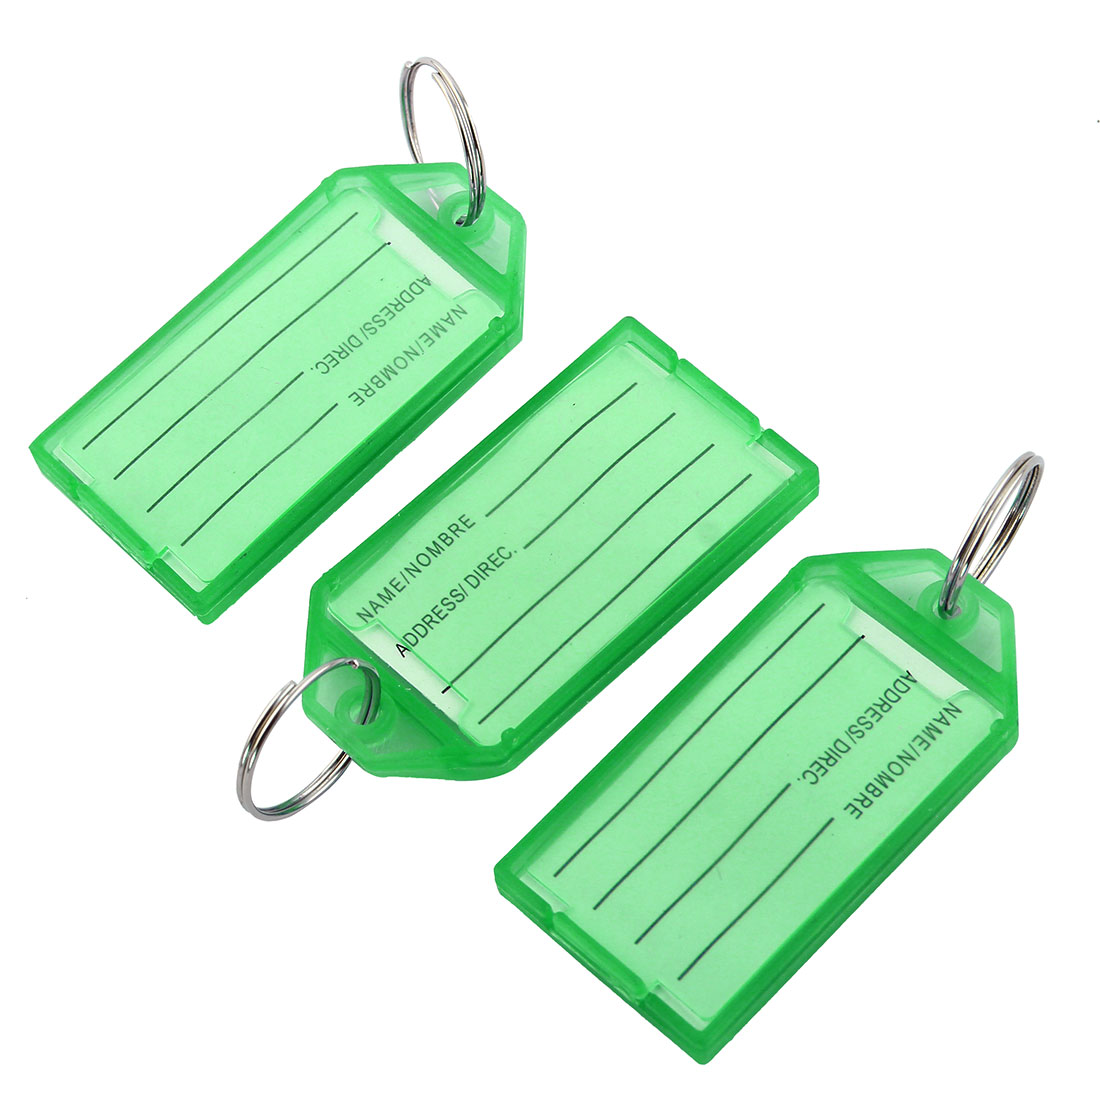 Travel Outdoor Plastic Rectangle Shaped Suitcase Luggage Tag Baggage Label Keyring Green 3pcs